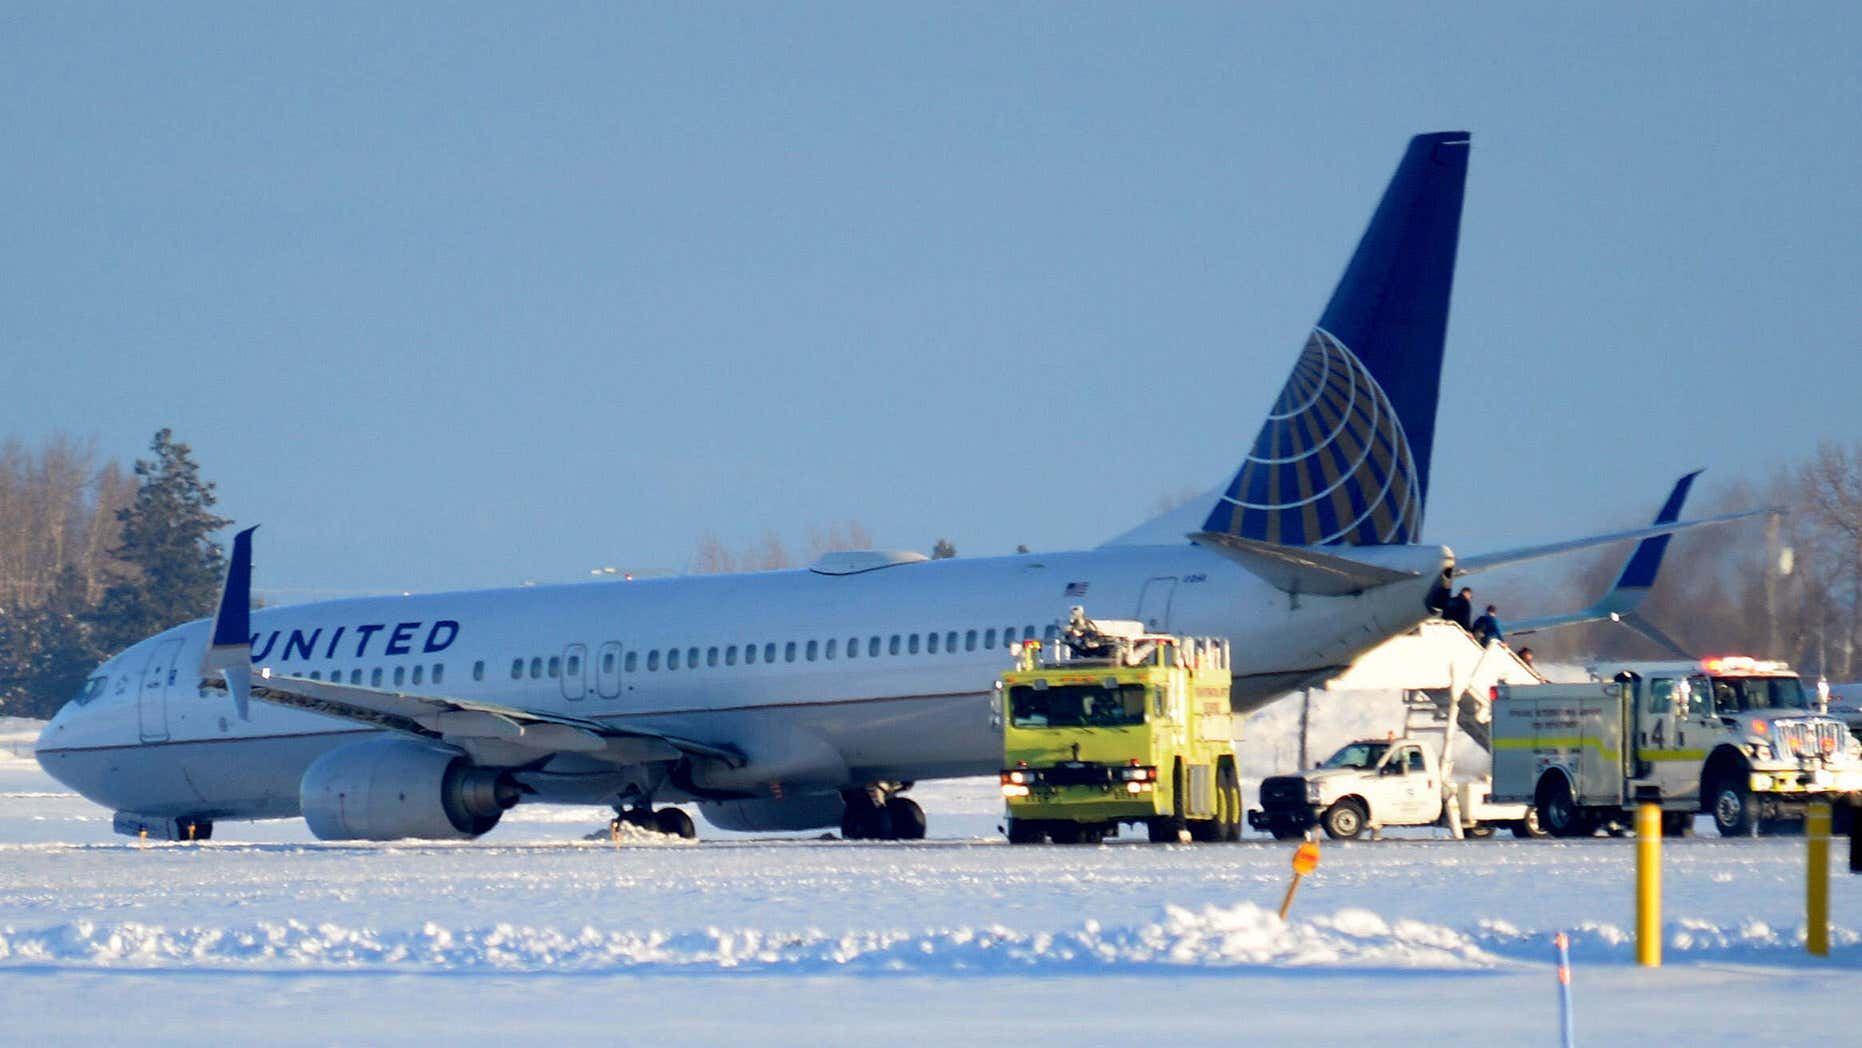 Jan. 5, 2016: Emergency vehicles surround a United Airlines aircraft as passengers wait to be evacuated at the Spokane International Airport in Spokane, Wash.